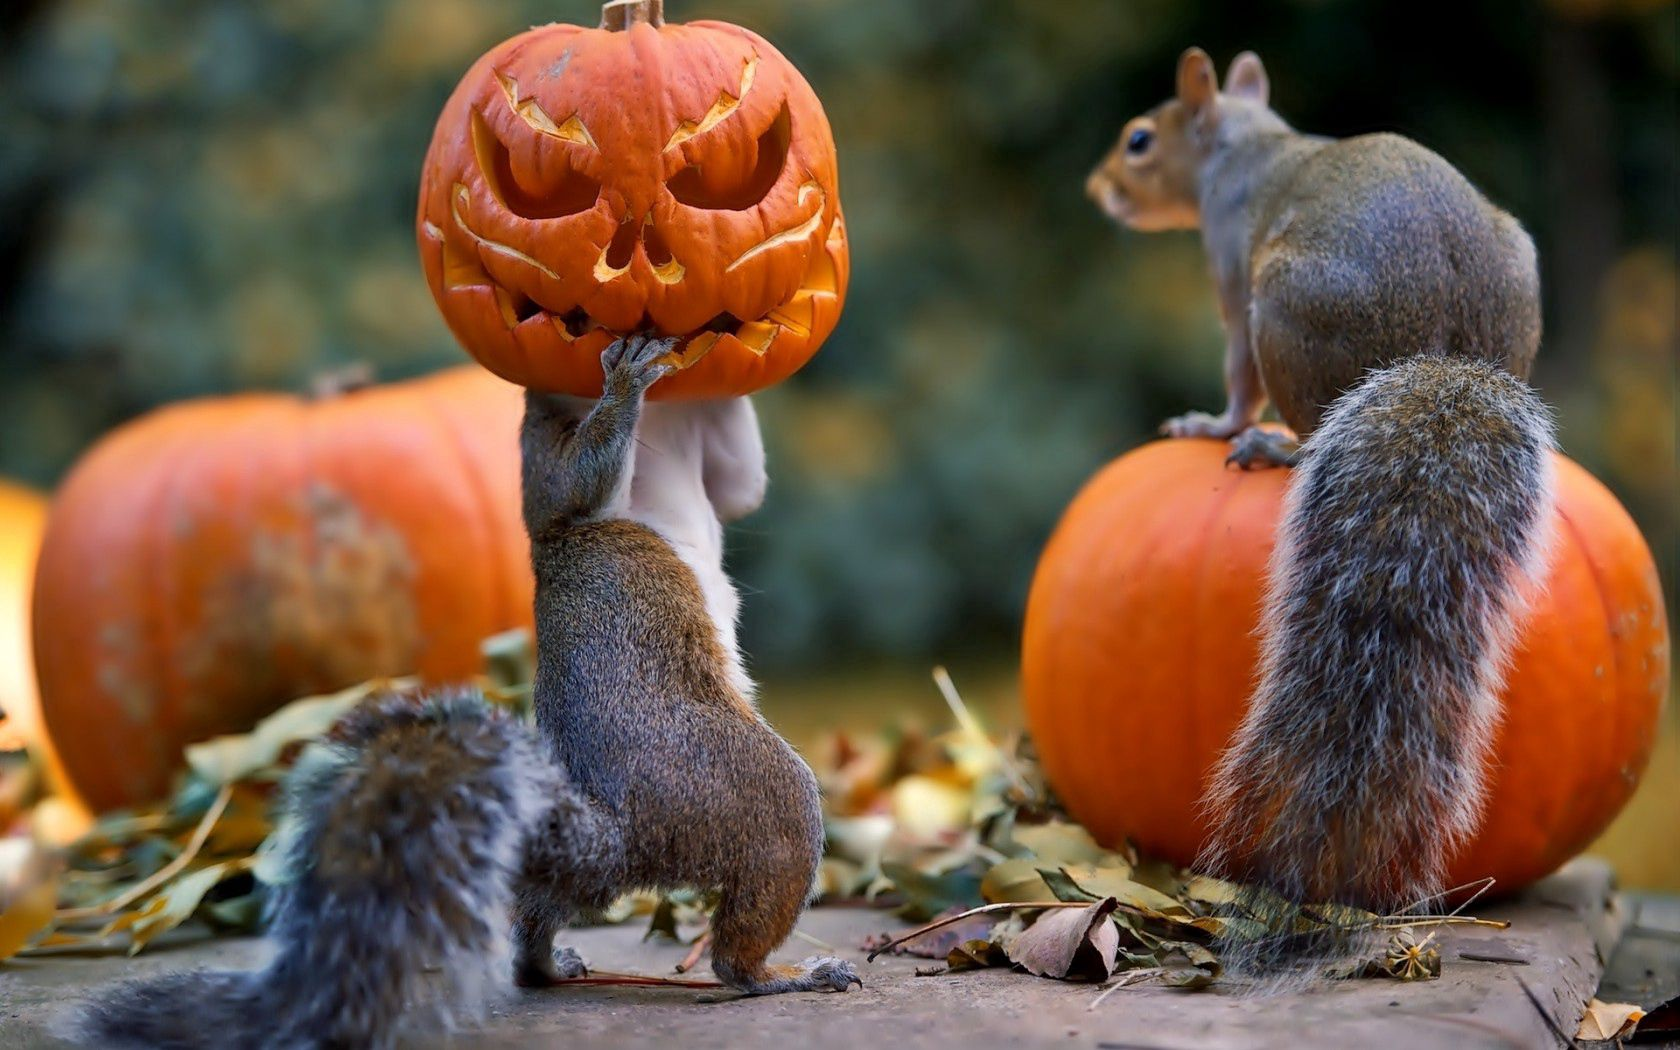 72705 download wallpaper Animals, Halloween, Squirrel, Pumpkin, Mask screensavers and pictures for free